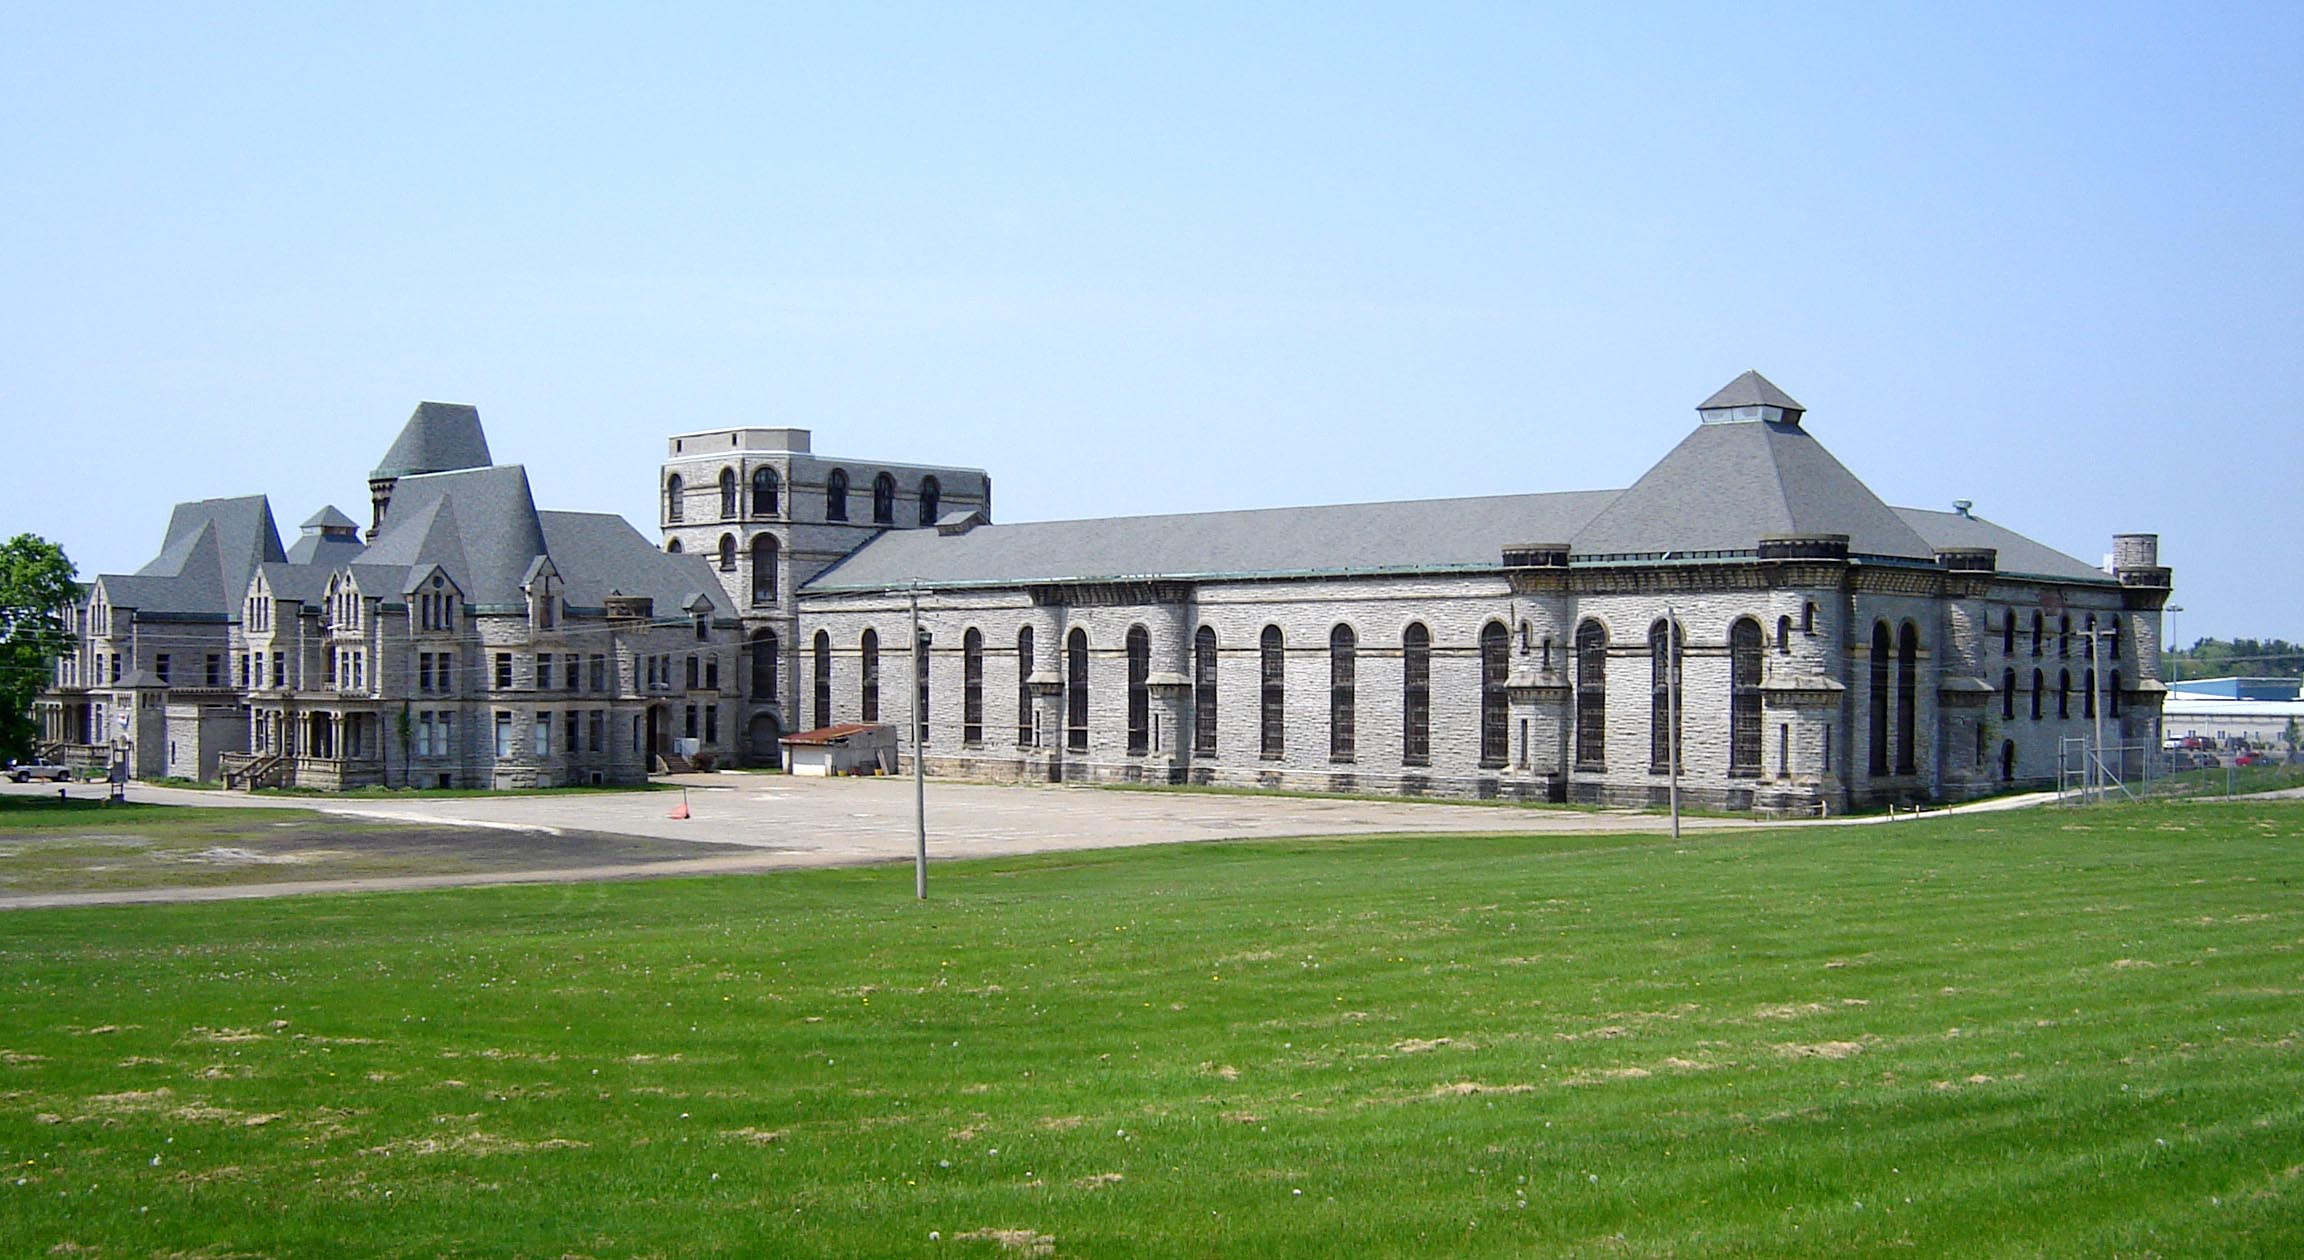 The exterior of the Ohio State Reformatory